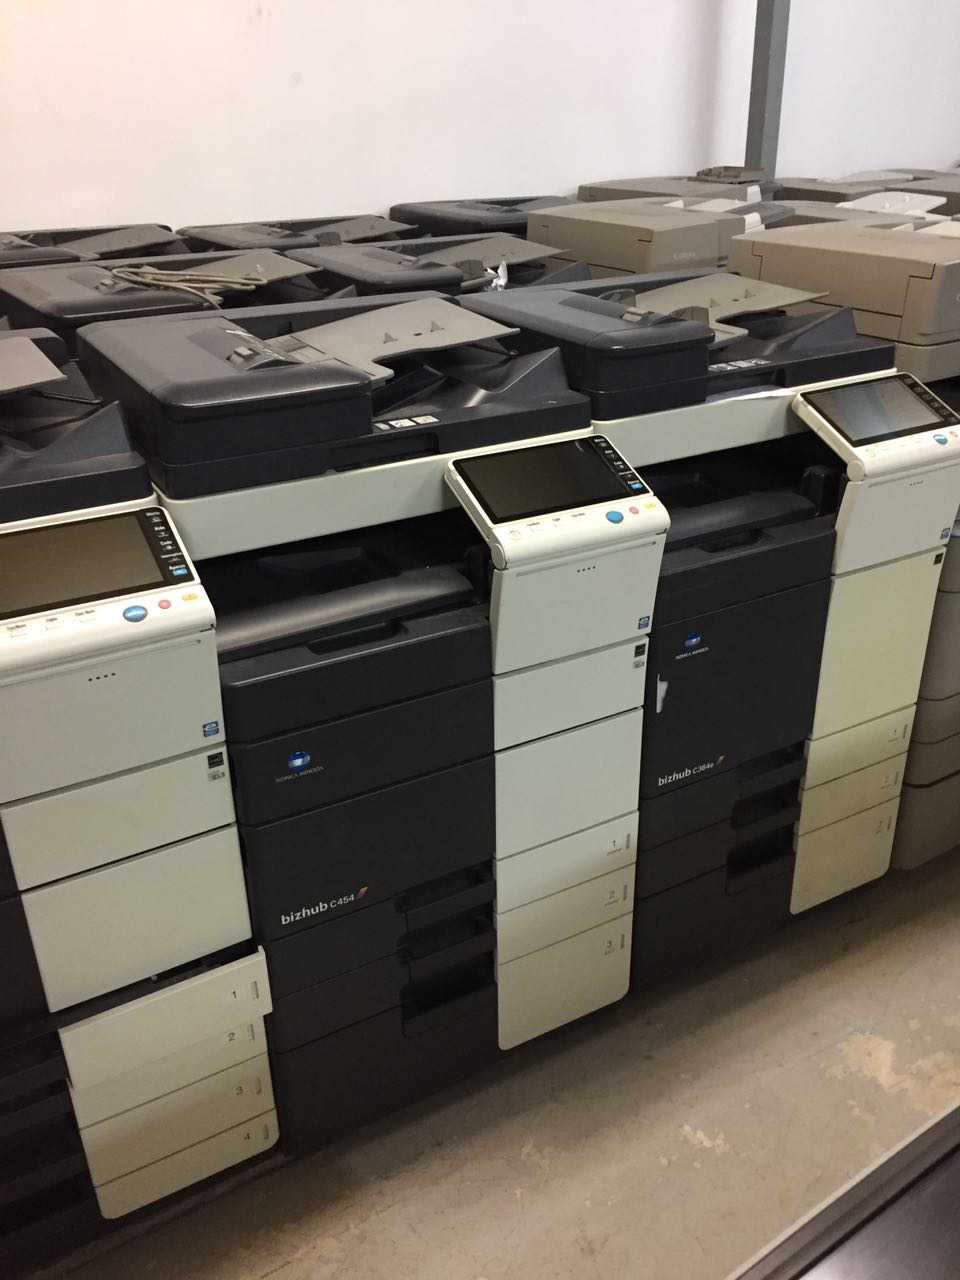 Konica Minolta Bizhub C224 A3/A4 colour multi-function printer/copier - Fully Refurbished